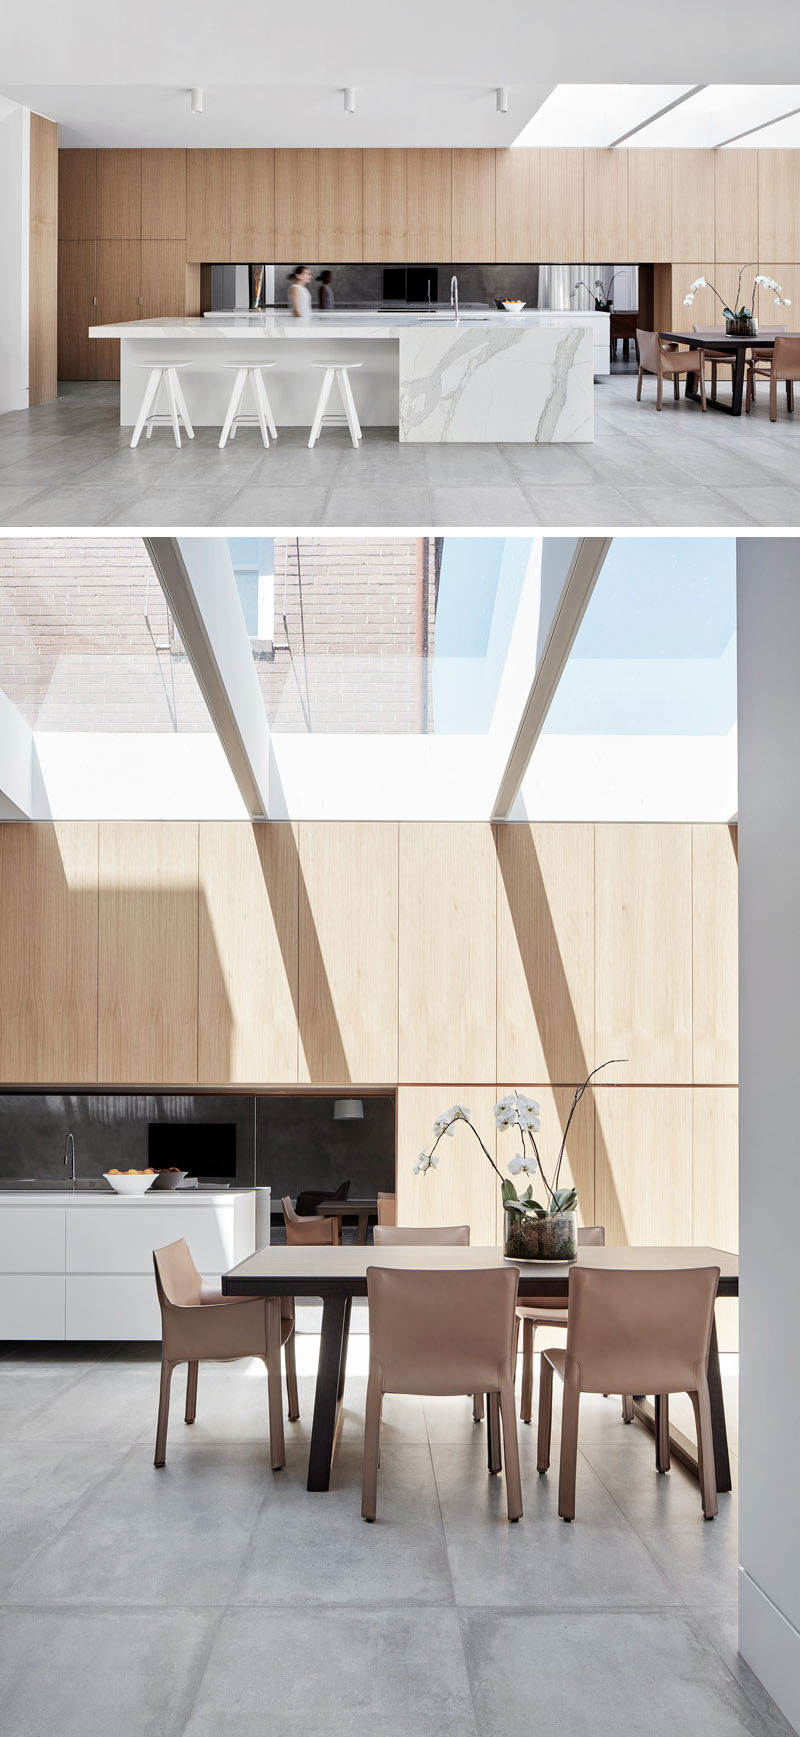 This modern kitchen has a nice light feel to it with the use of light wood and light marble. The dining room shares the space and has plenty of natural light from the large skylight above.